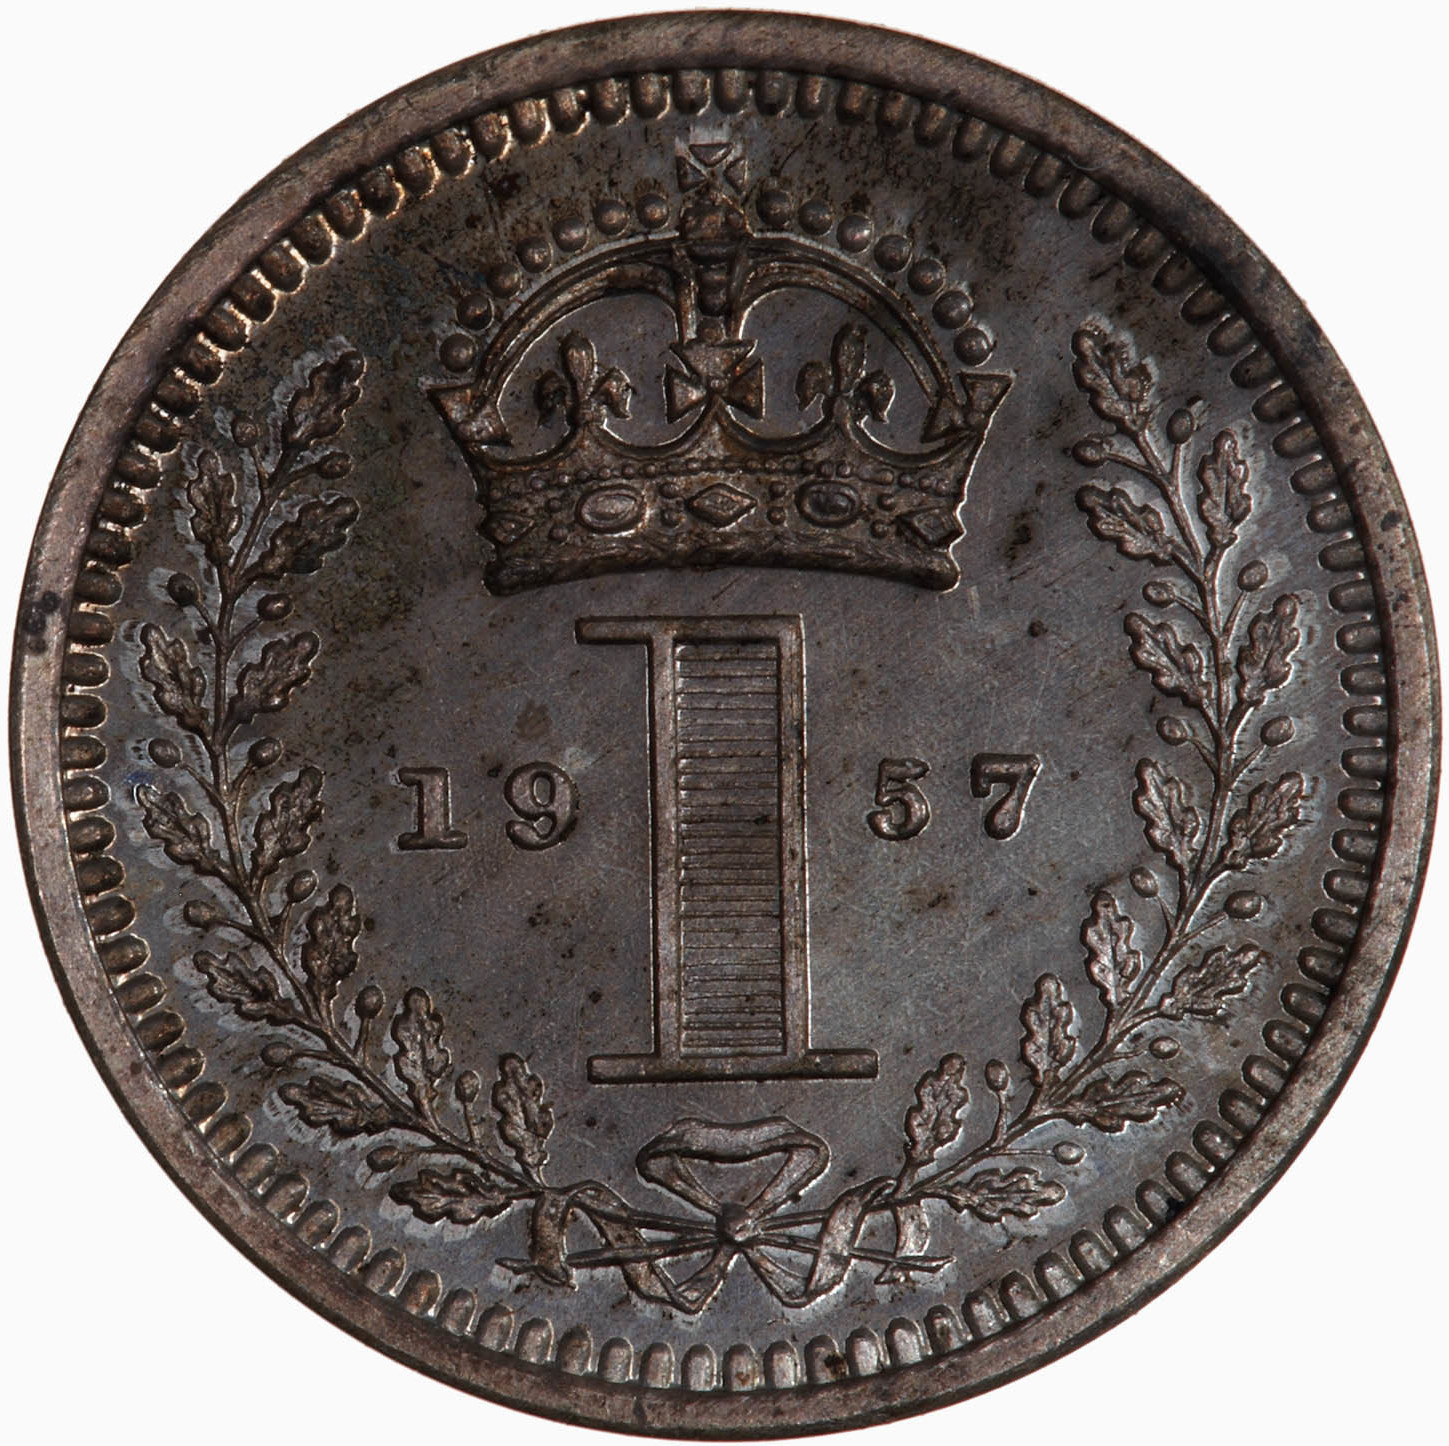 Penny 1957 (Maundy): Photo Coin - Penny (Maundy), Elizabeth II, Great Britain, 1957